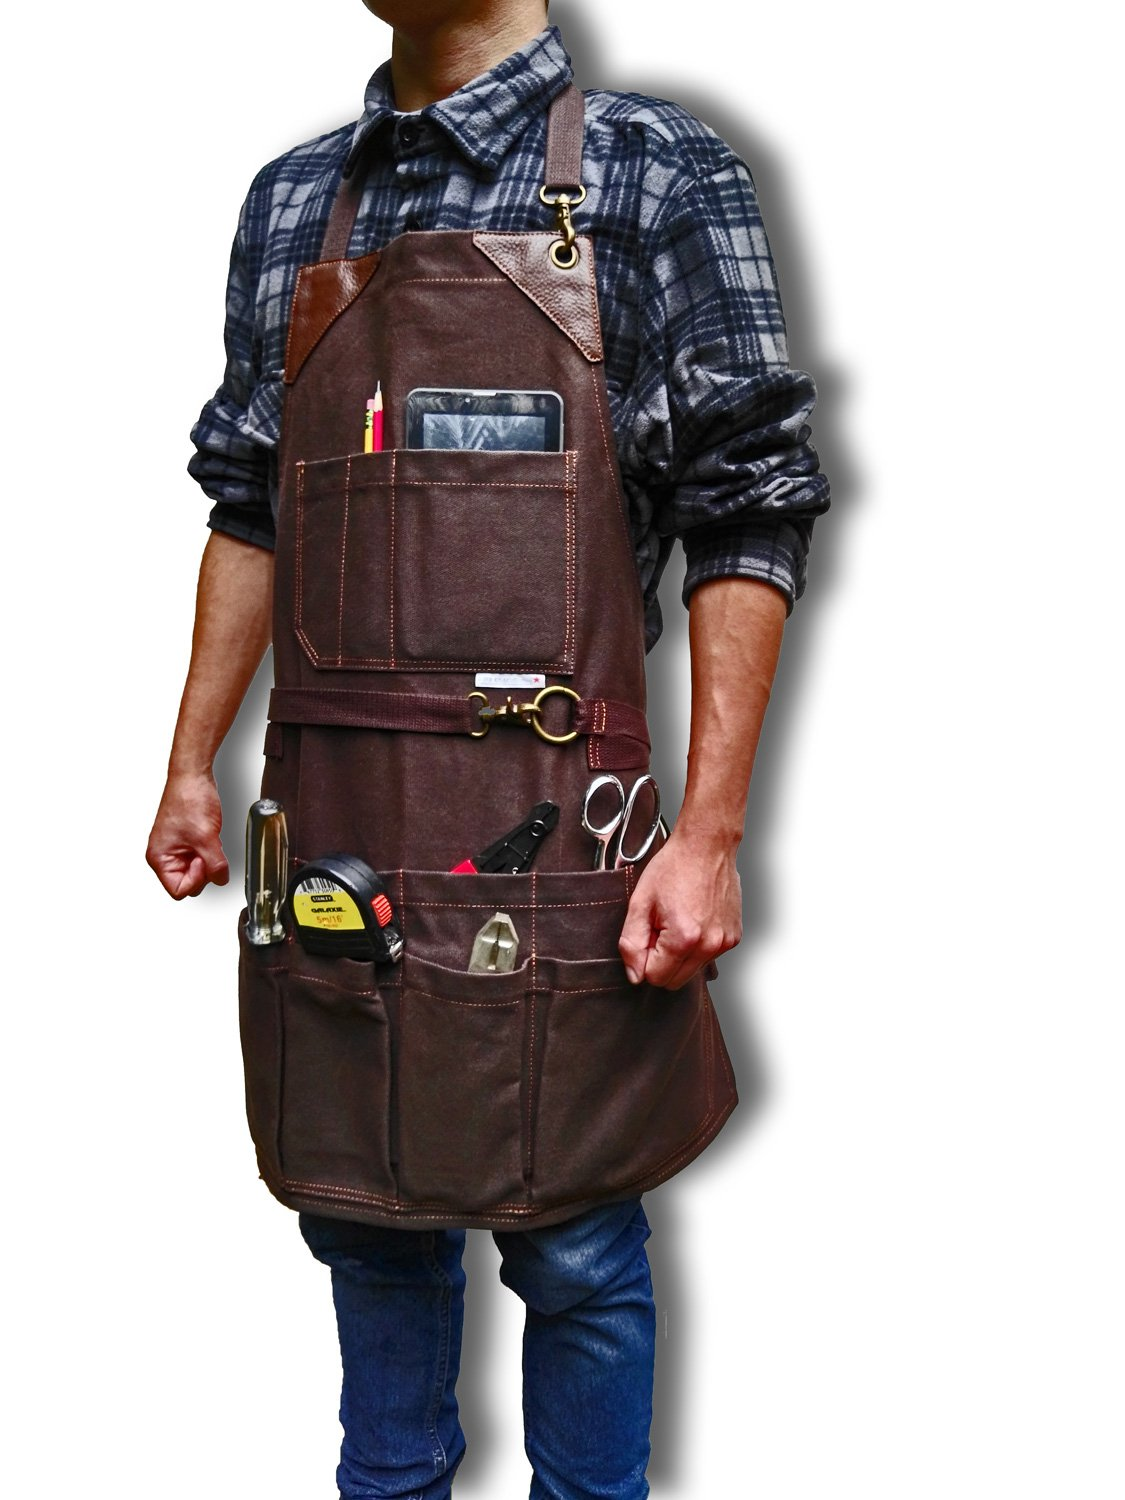 BEST CHOICE Heavy Duty Waterproof All-Purpose Bib Apron - Workshop Waxed Canvas - 11x Pockets & 2 Shackles for Accessories & Tools - Adjustable Neck and Waist Strap - Size S-XXL for Men & Women.